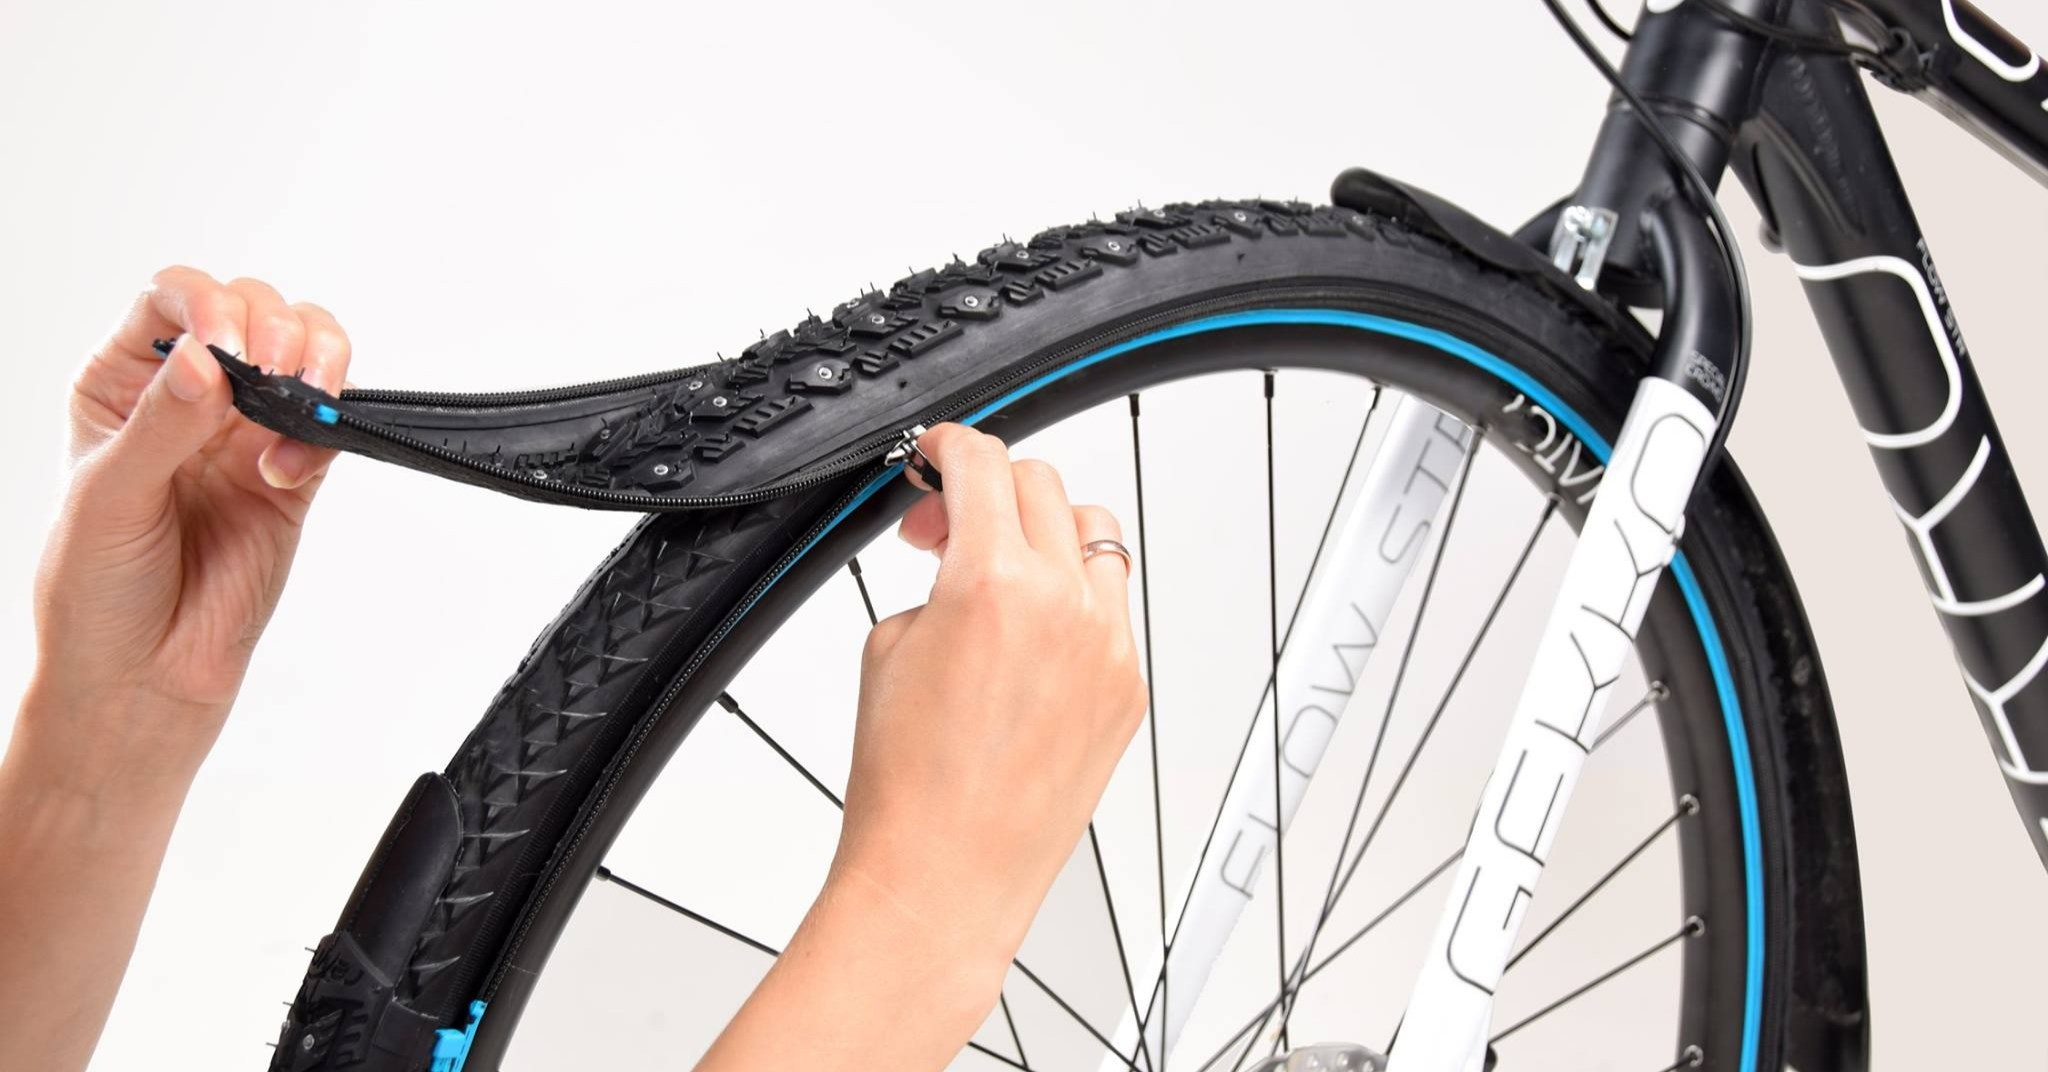 Tread, Bicycle, Tire, Car, Motorcycle, Transport, Bicycle Tires, Vehicle, Snow tire, Commuting, urban winter detachable studcovers, Überzieh-spikesreifen, bicycle, road bicycle, bicycle wheel, bicycle saddle, bicycle part, bicycle tire, bicycle frame, bicycle accessory, tire, product